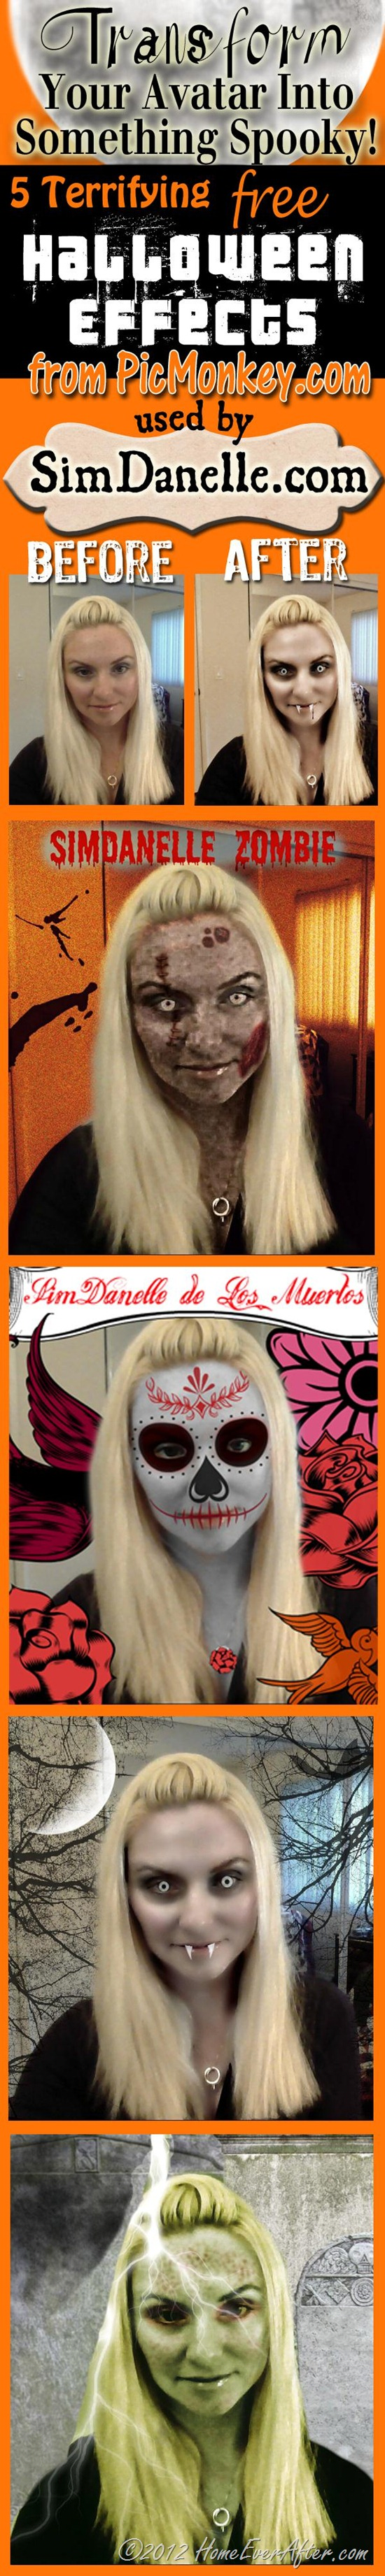 Danelle Ice SimDanelle Halloween Photo Effects Avatars